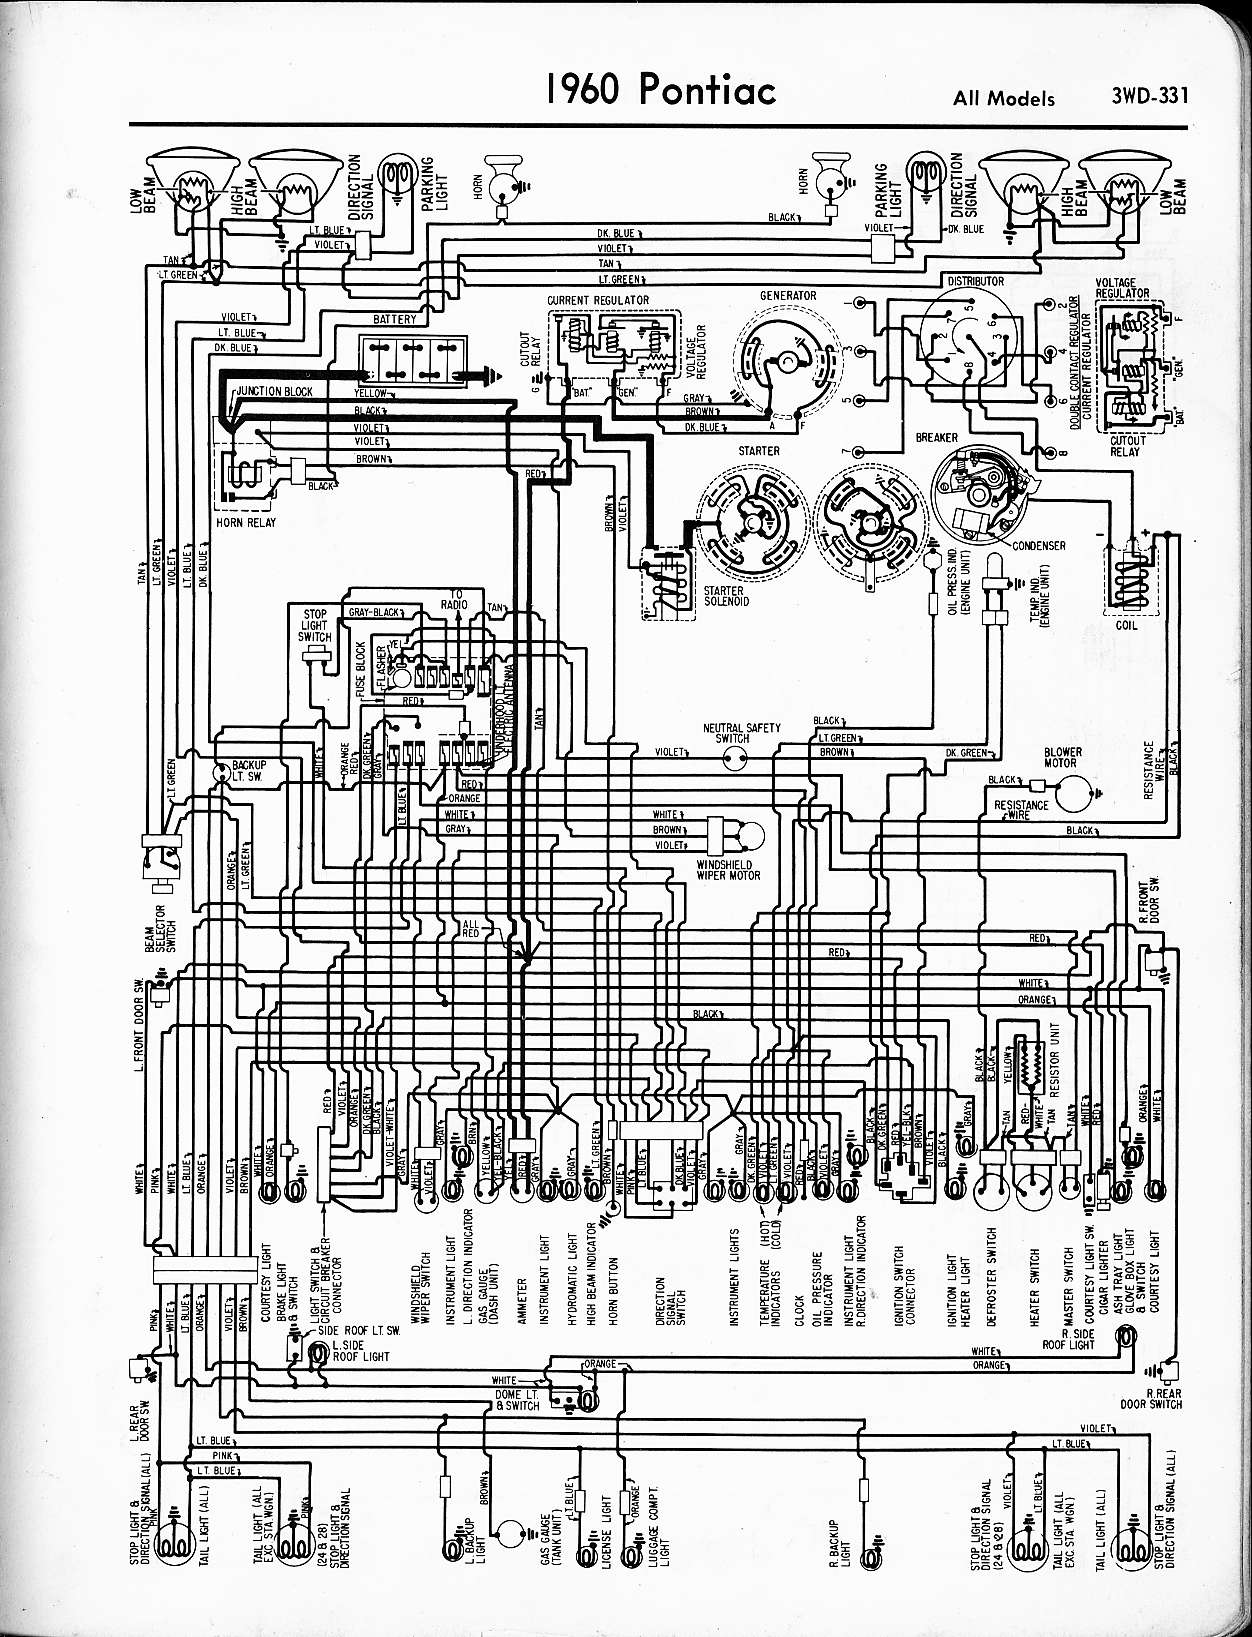 Bonneville Monsoon Amp Wiring Diagram Worksheet And Jetta For Color Pontiac Online Schematics Rh Delvato Co Camaro 2006 Passat